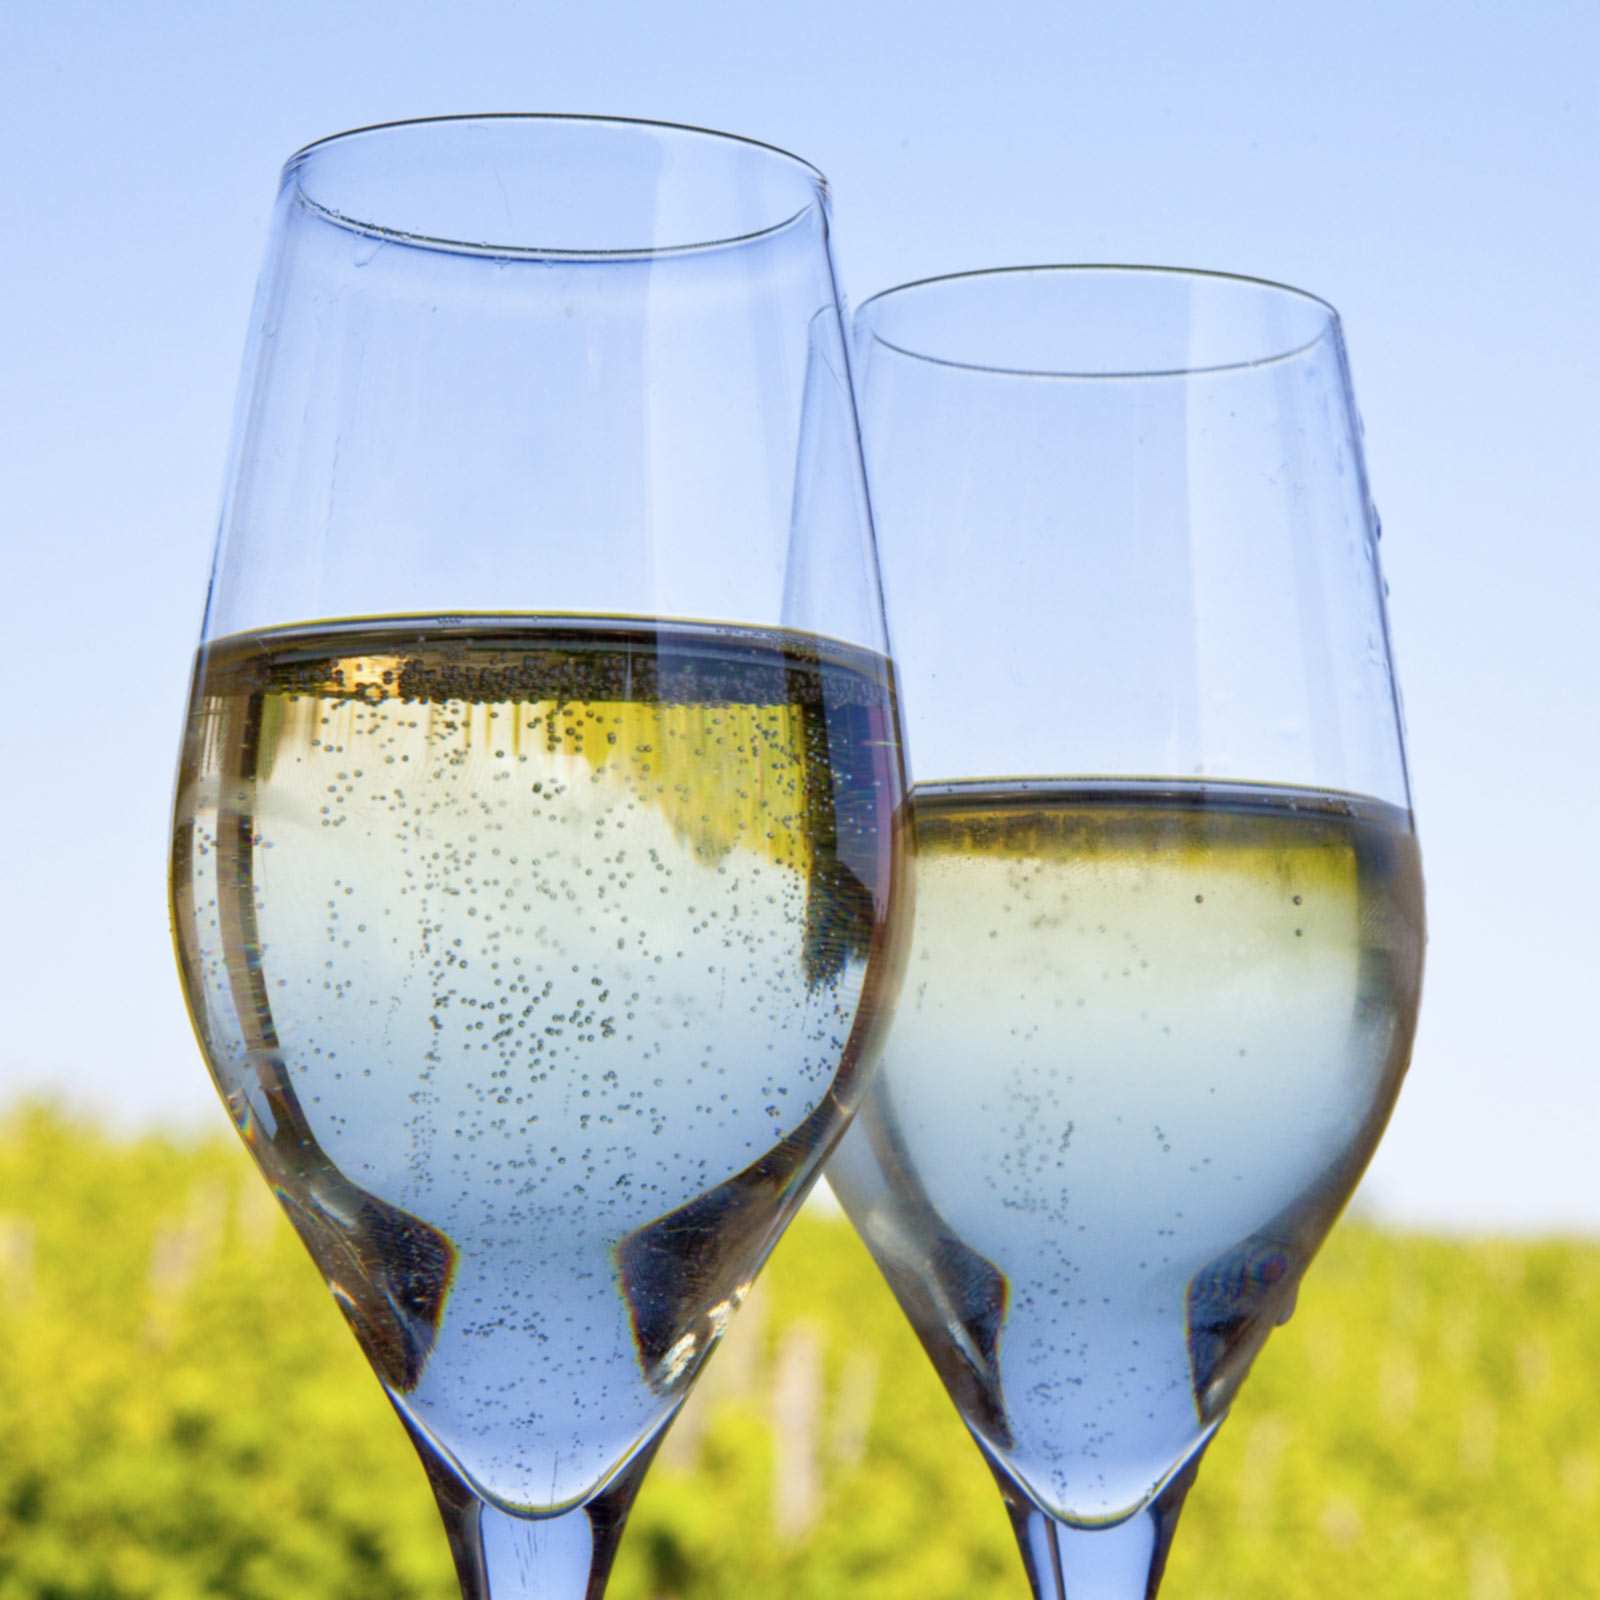 Two Glasses of Sparkling Wine in a Willamette Valley Vineyard